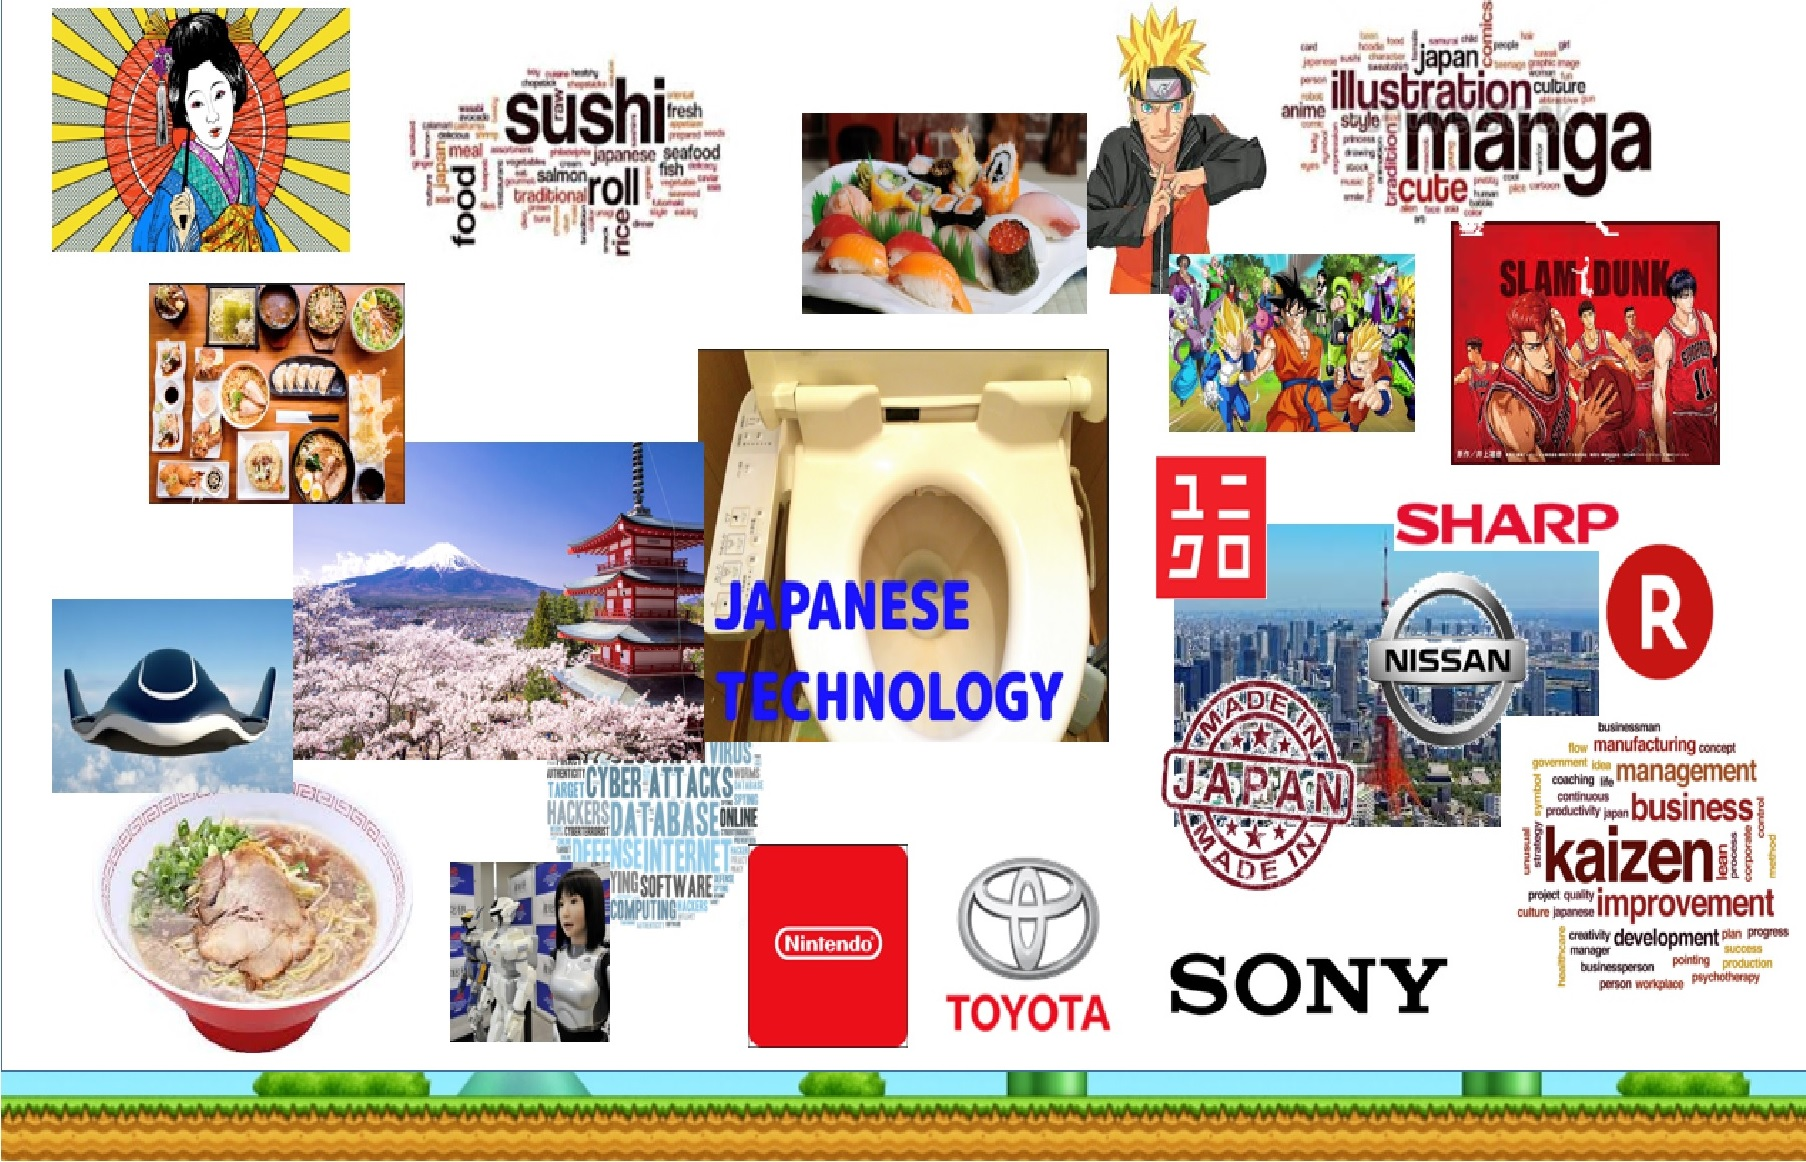 Japan Trek - Travel to Tokyo & Osaka.   Visit prestigious business enterprise and understand how to do business in Japan and acquire a network with Japanese companies.  Get in touch with a wide variety cultures such as Sushi, Manga,Shrines and Games.